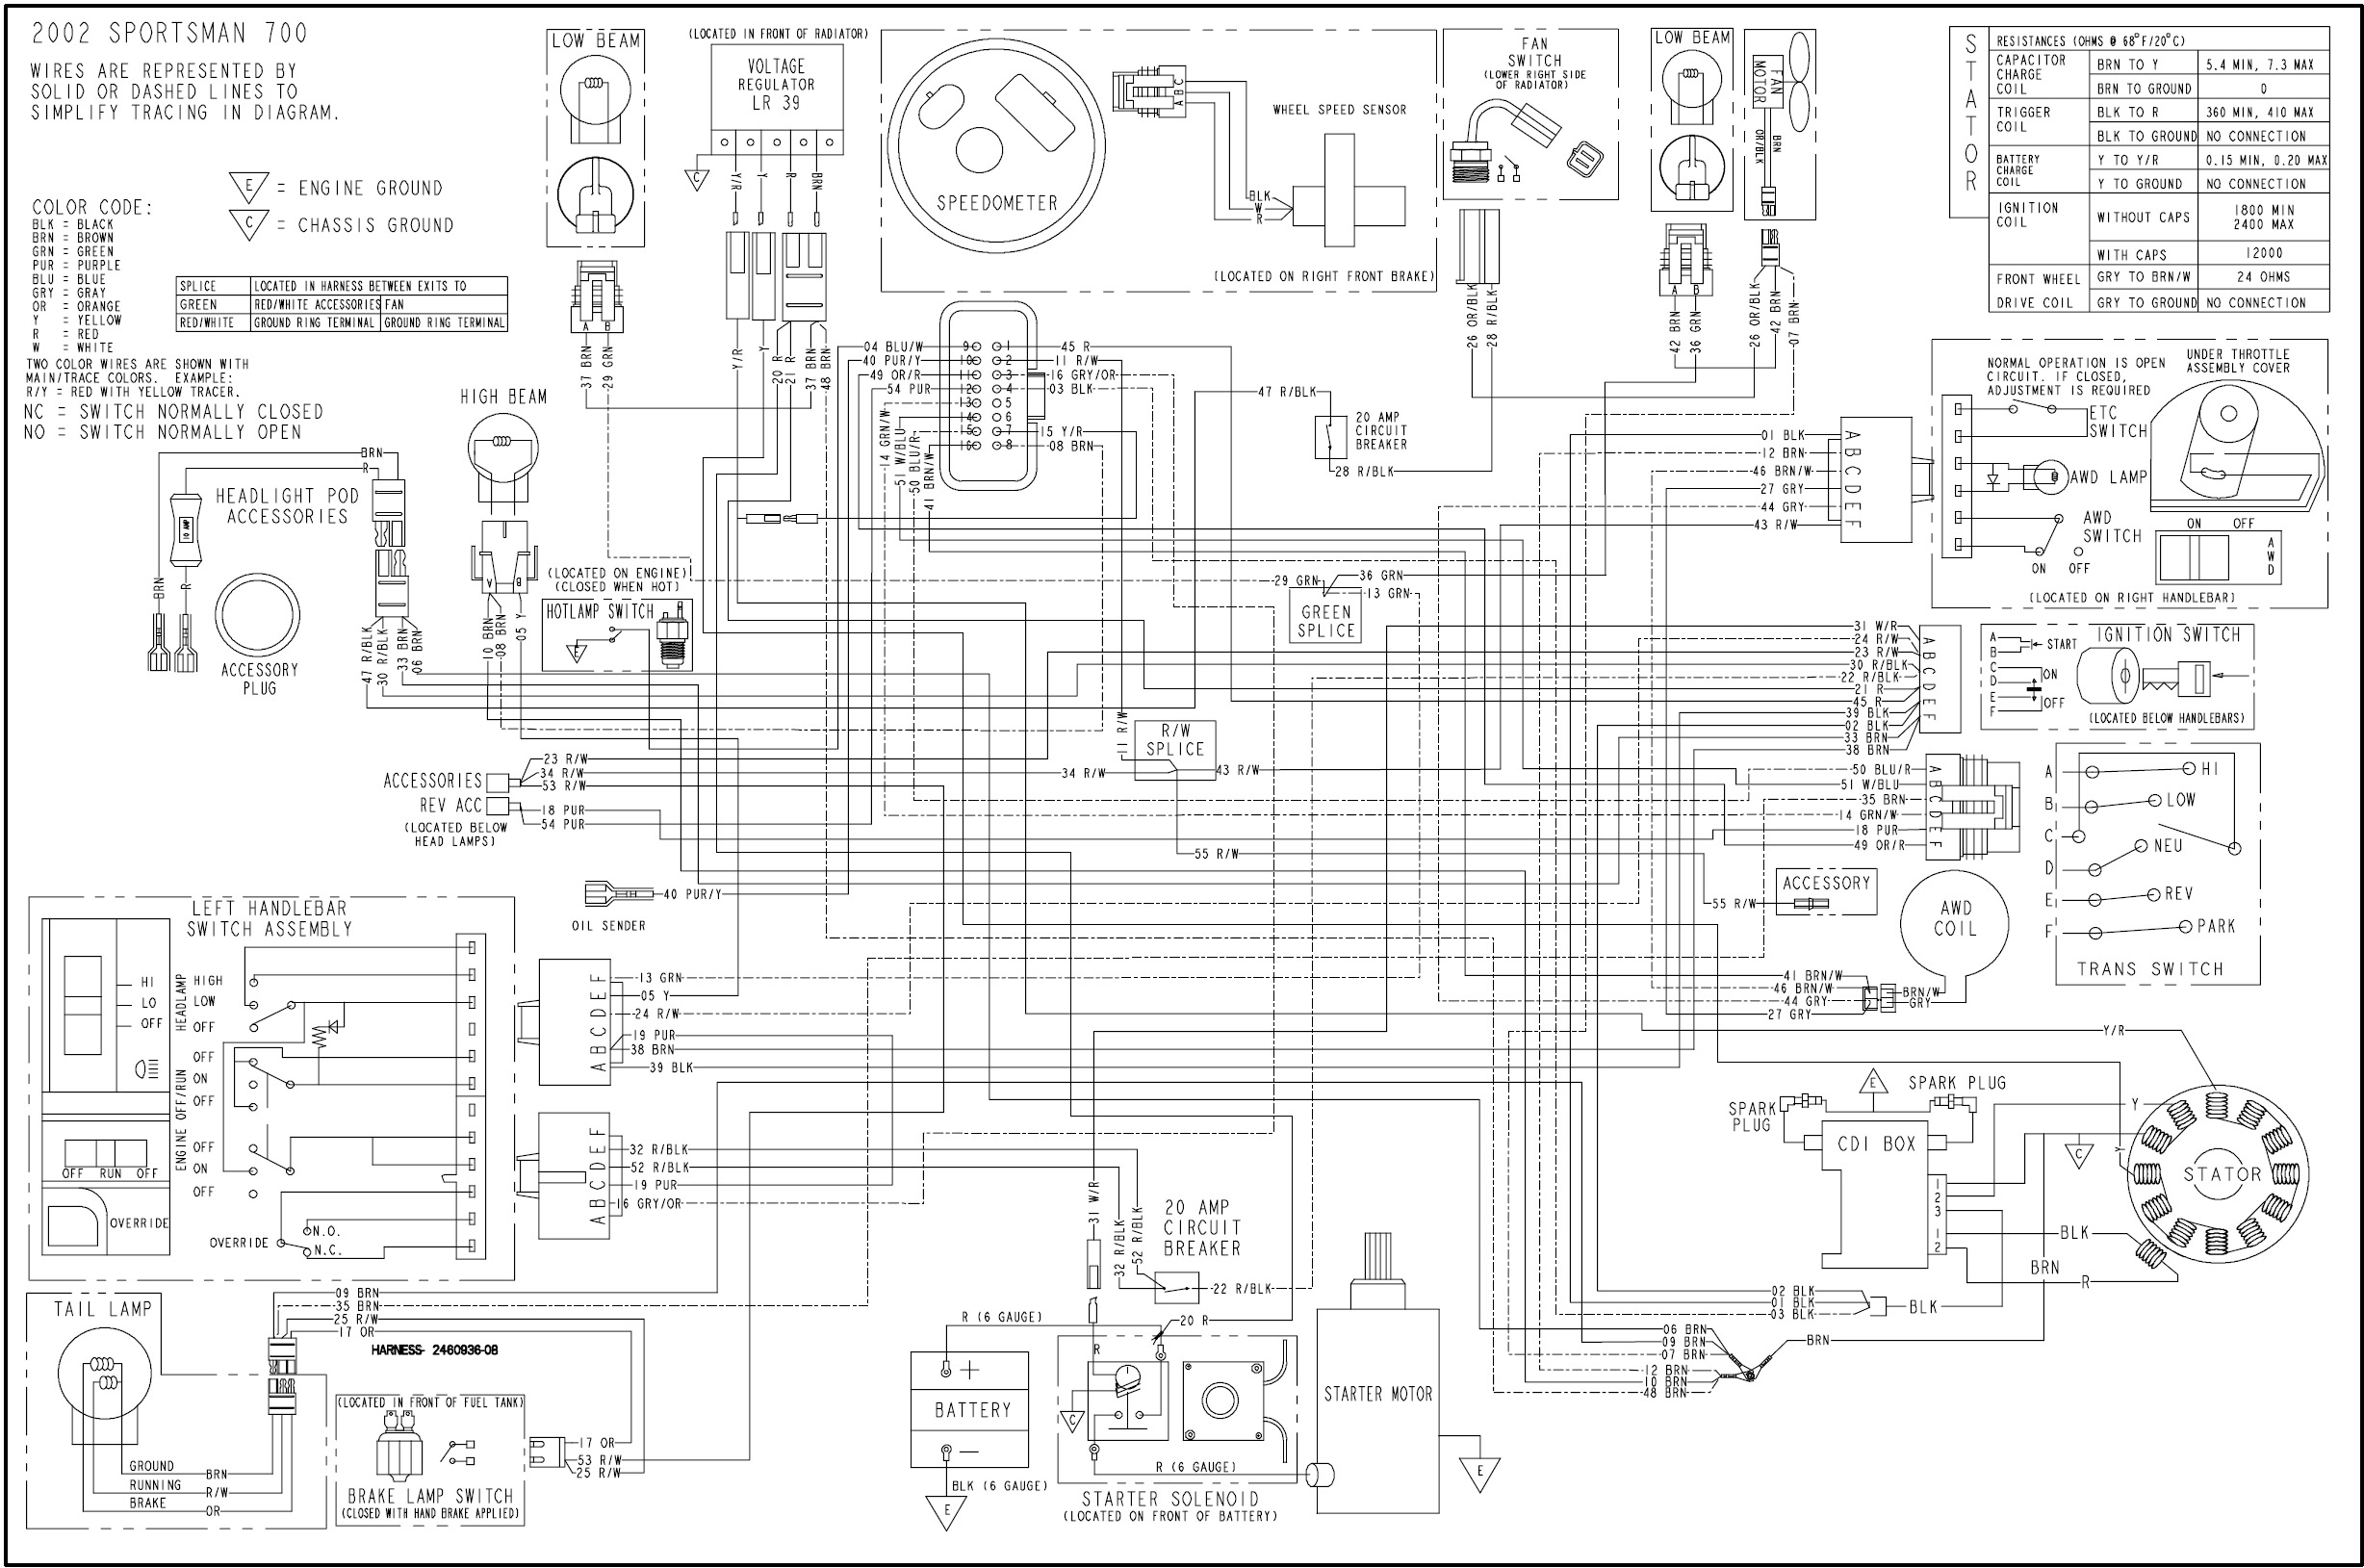 657 Polaris Turbo Iq 2011 Fuse Box Diagram | Wiring Library